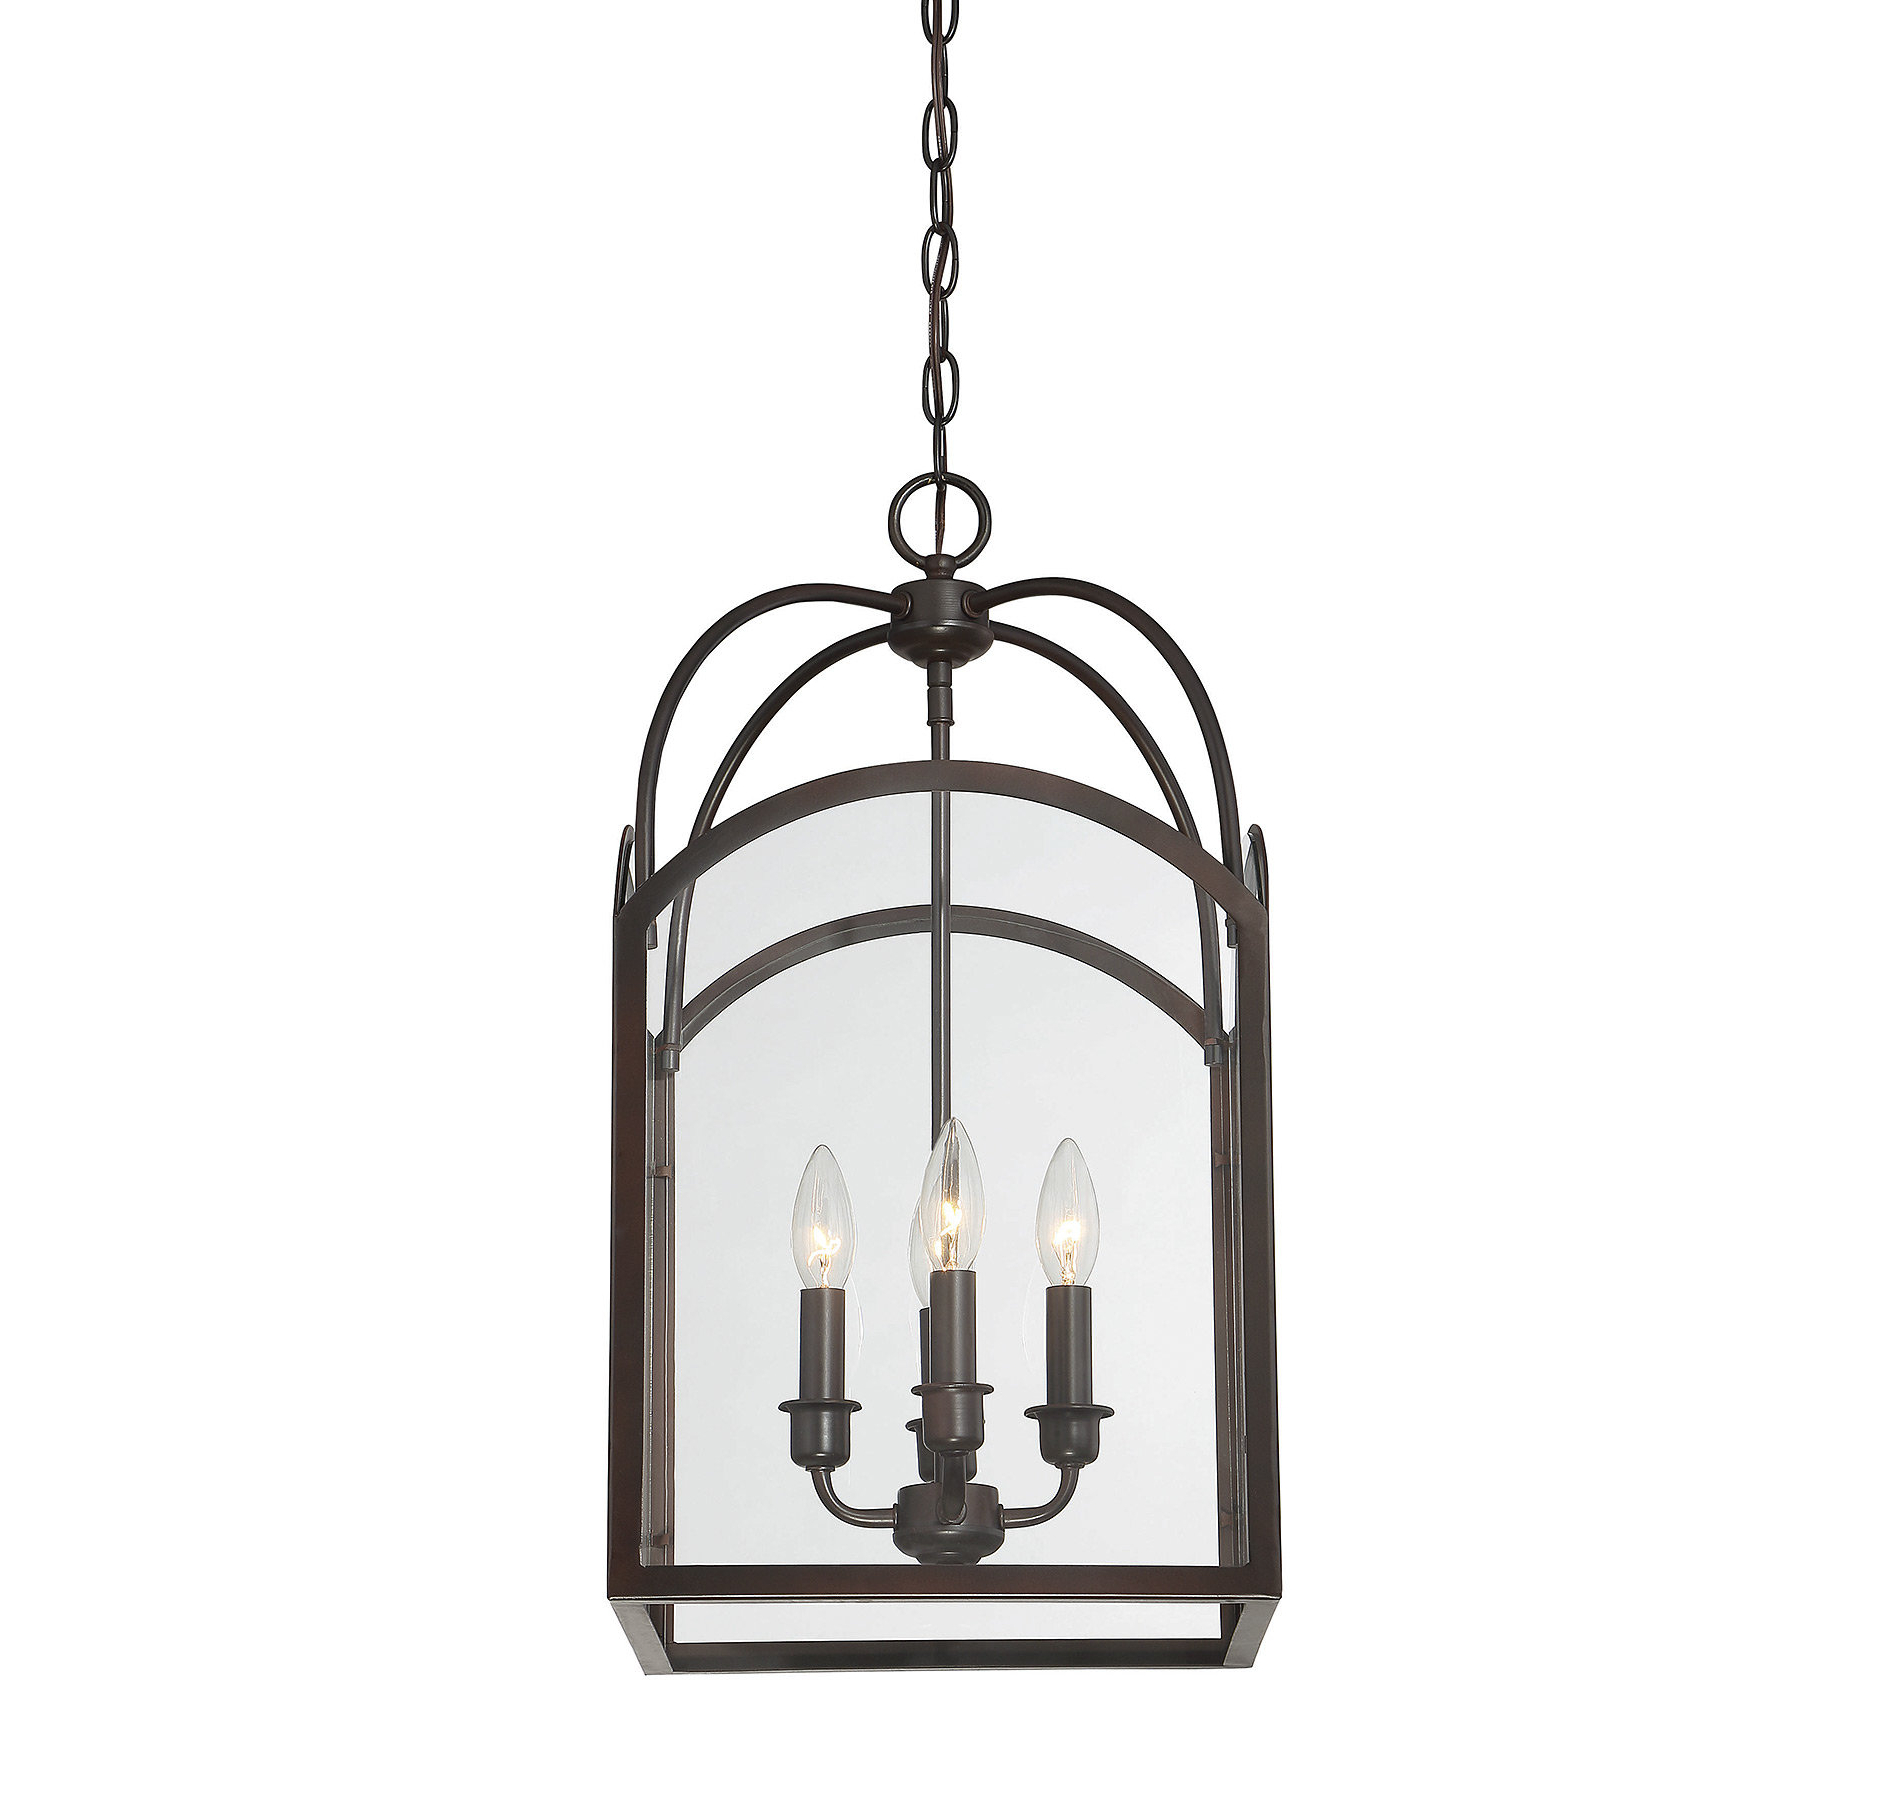 Taya 4 Light Lantern Square Pendants Intended For Well Known Mount Airy 4 Light Lantern Geometric Pendant (View 15 of 20)